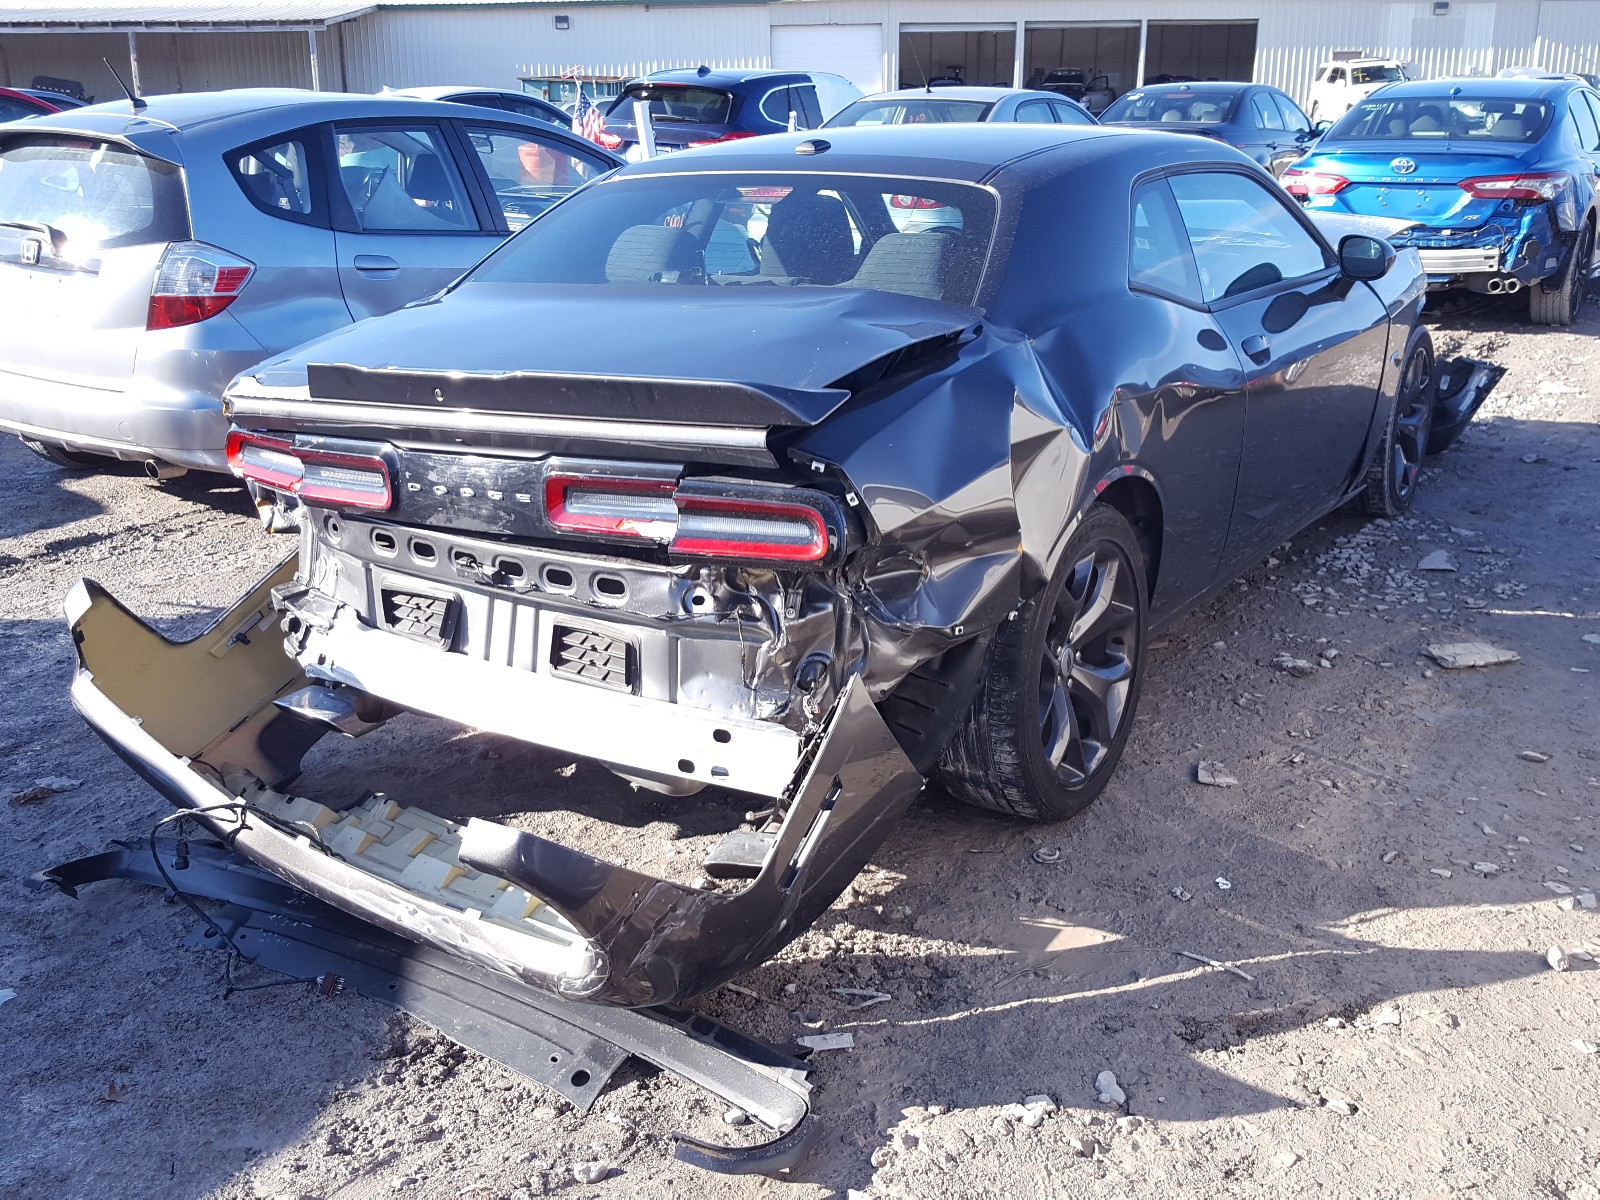 2C3CDZBT9KH583412 - 2019 Dodge Challenger 5.7L rear view